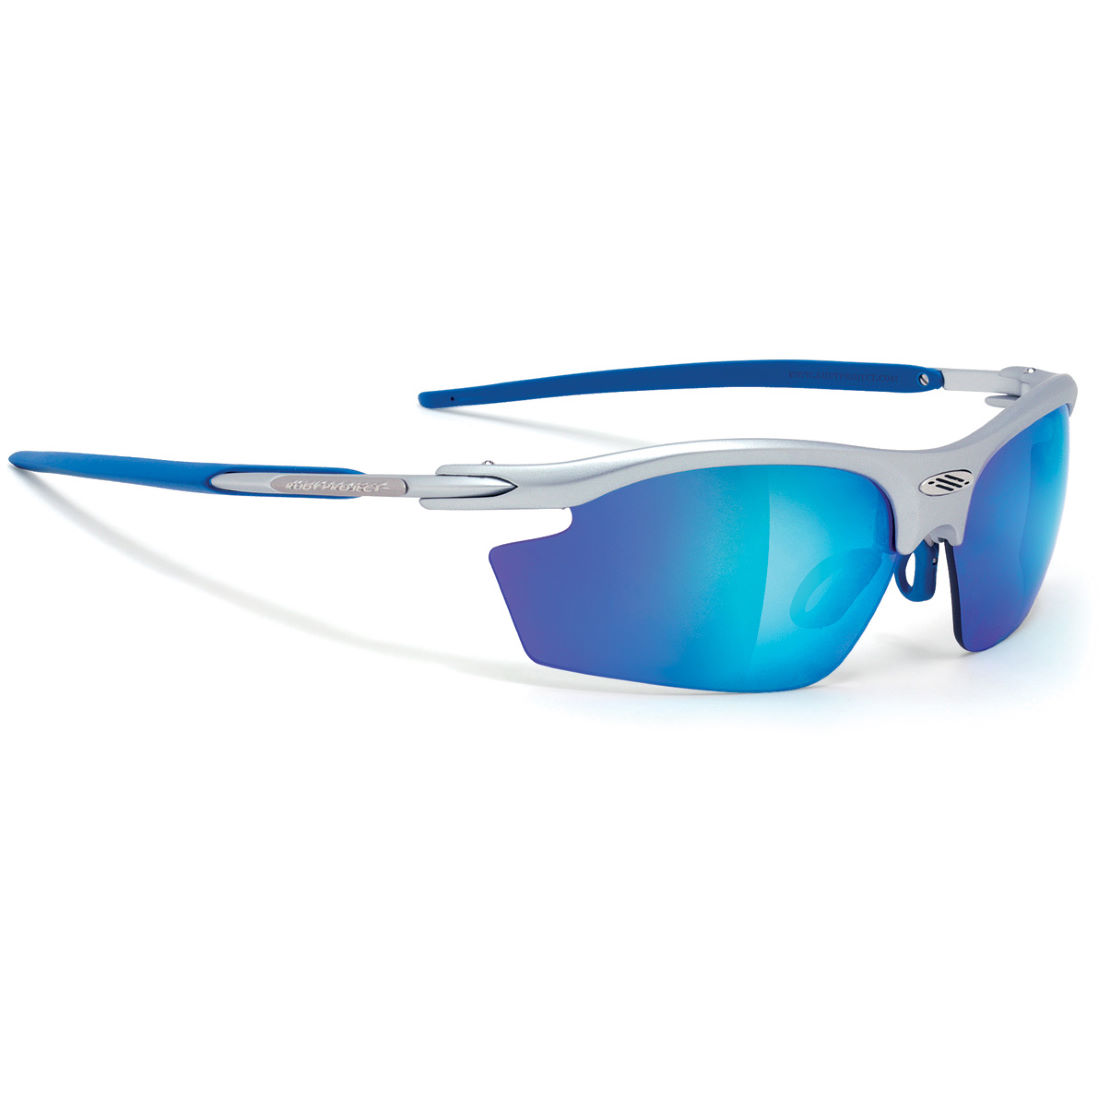 rudy project rydon Shop the rudy project rydon sunglasses with photochromic lens impactx 2 lens online at sigma sports receive free uk delivery and returns on all orders over £30.